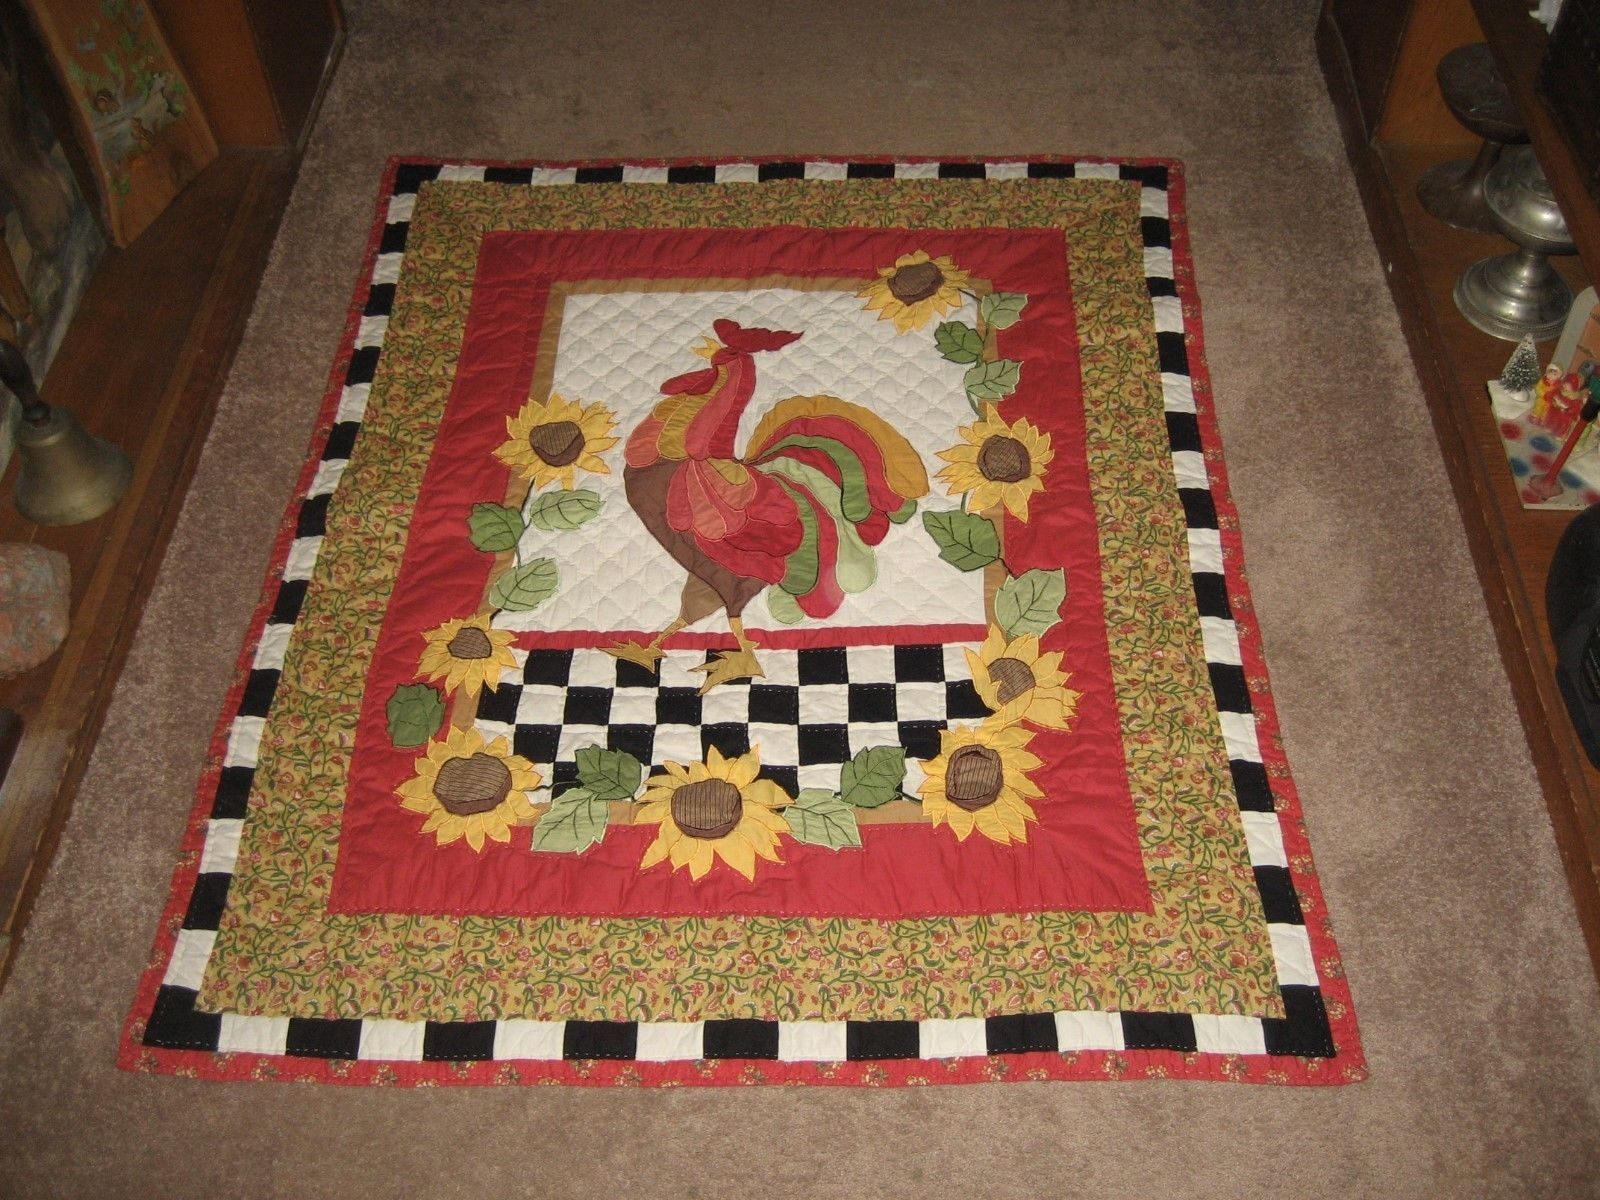 "Super Nice Hand made Holiday Quilt. Turkey Center. Fall Leaves. 57"" x 47"" Awesom"